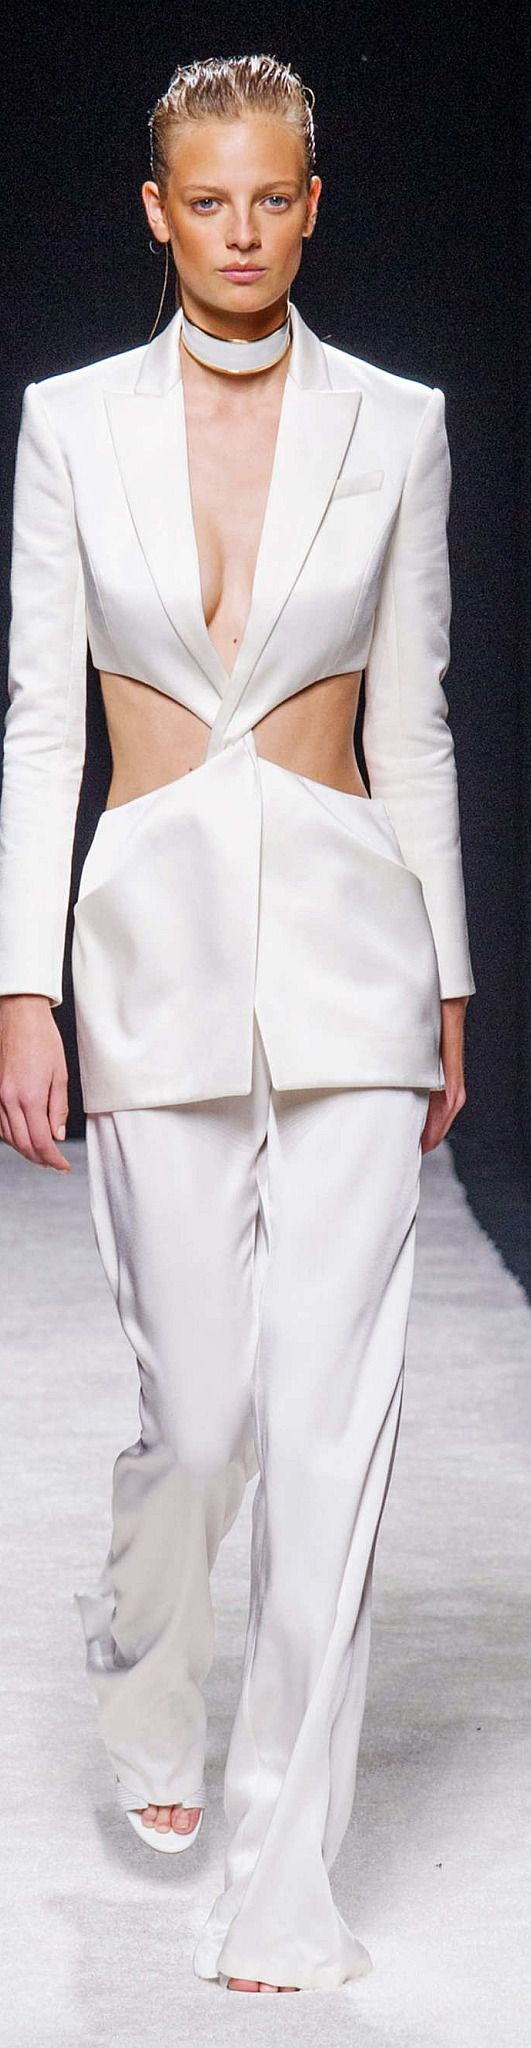 Balmain Collection Spring 2015 by J.Mitchell